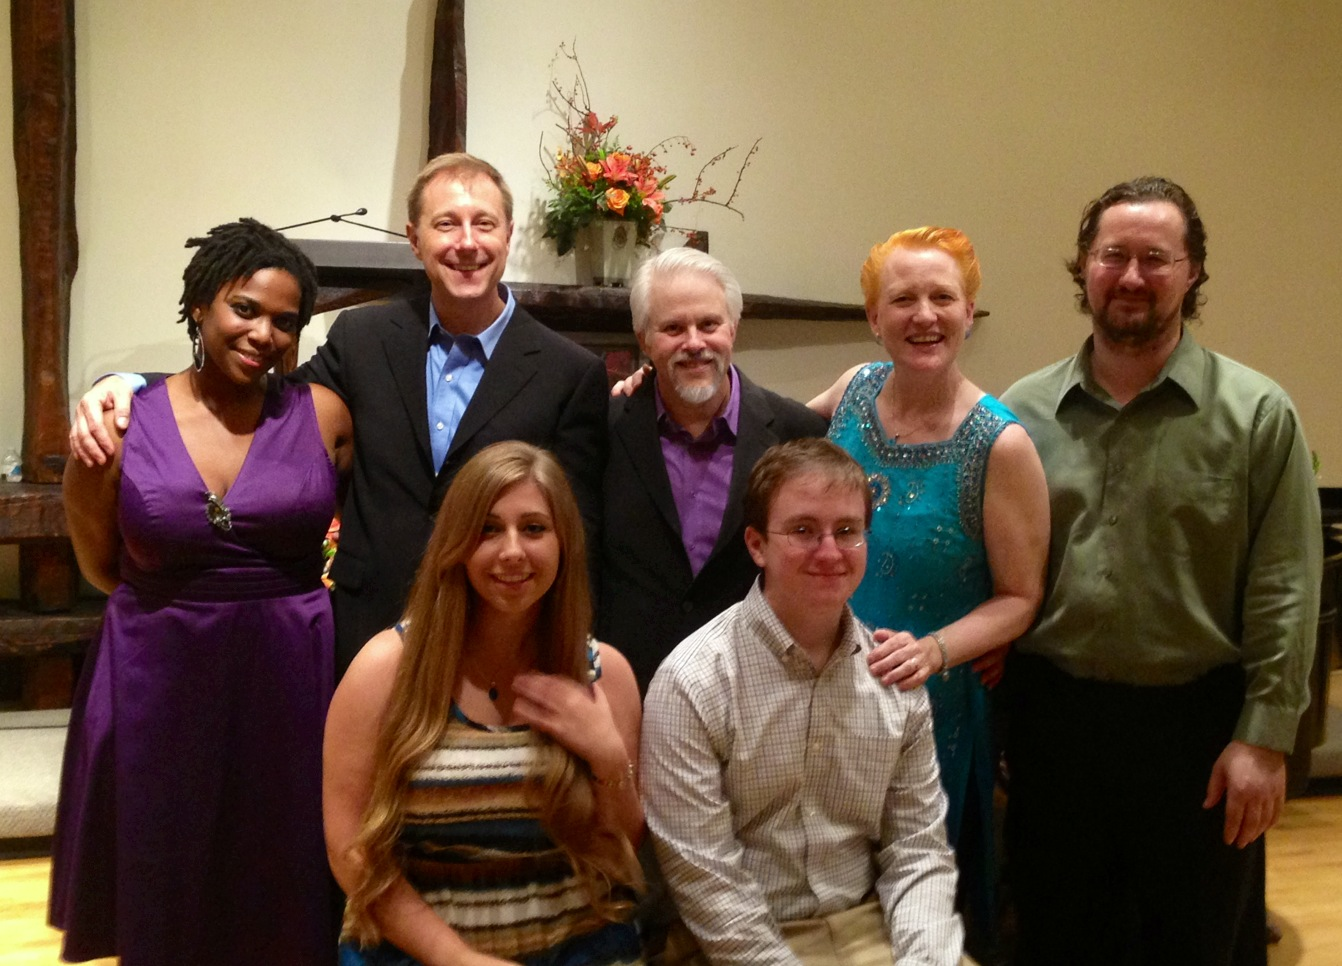 PV with guest artists Kyra Sims & Andrew Pecota. Seated are award winner Jacqueline Romeo and composer Michael Parsons